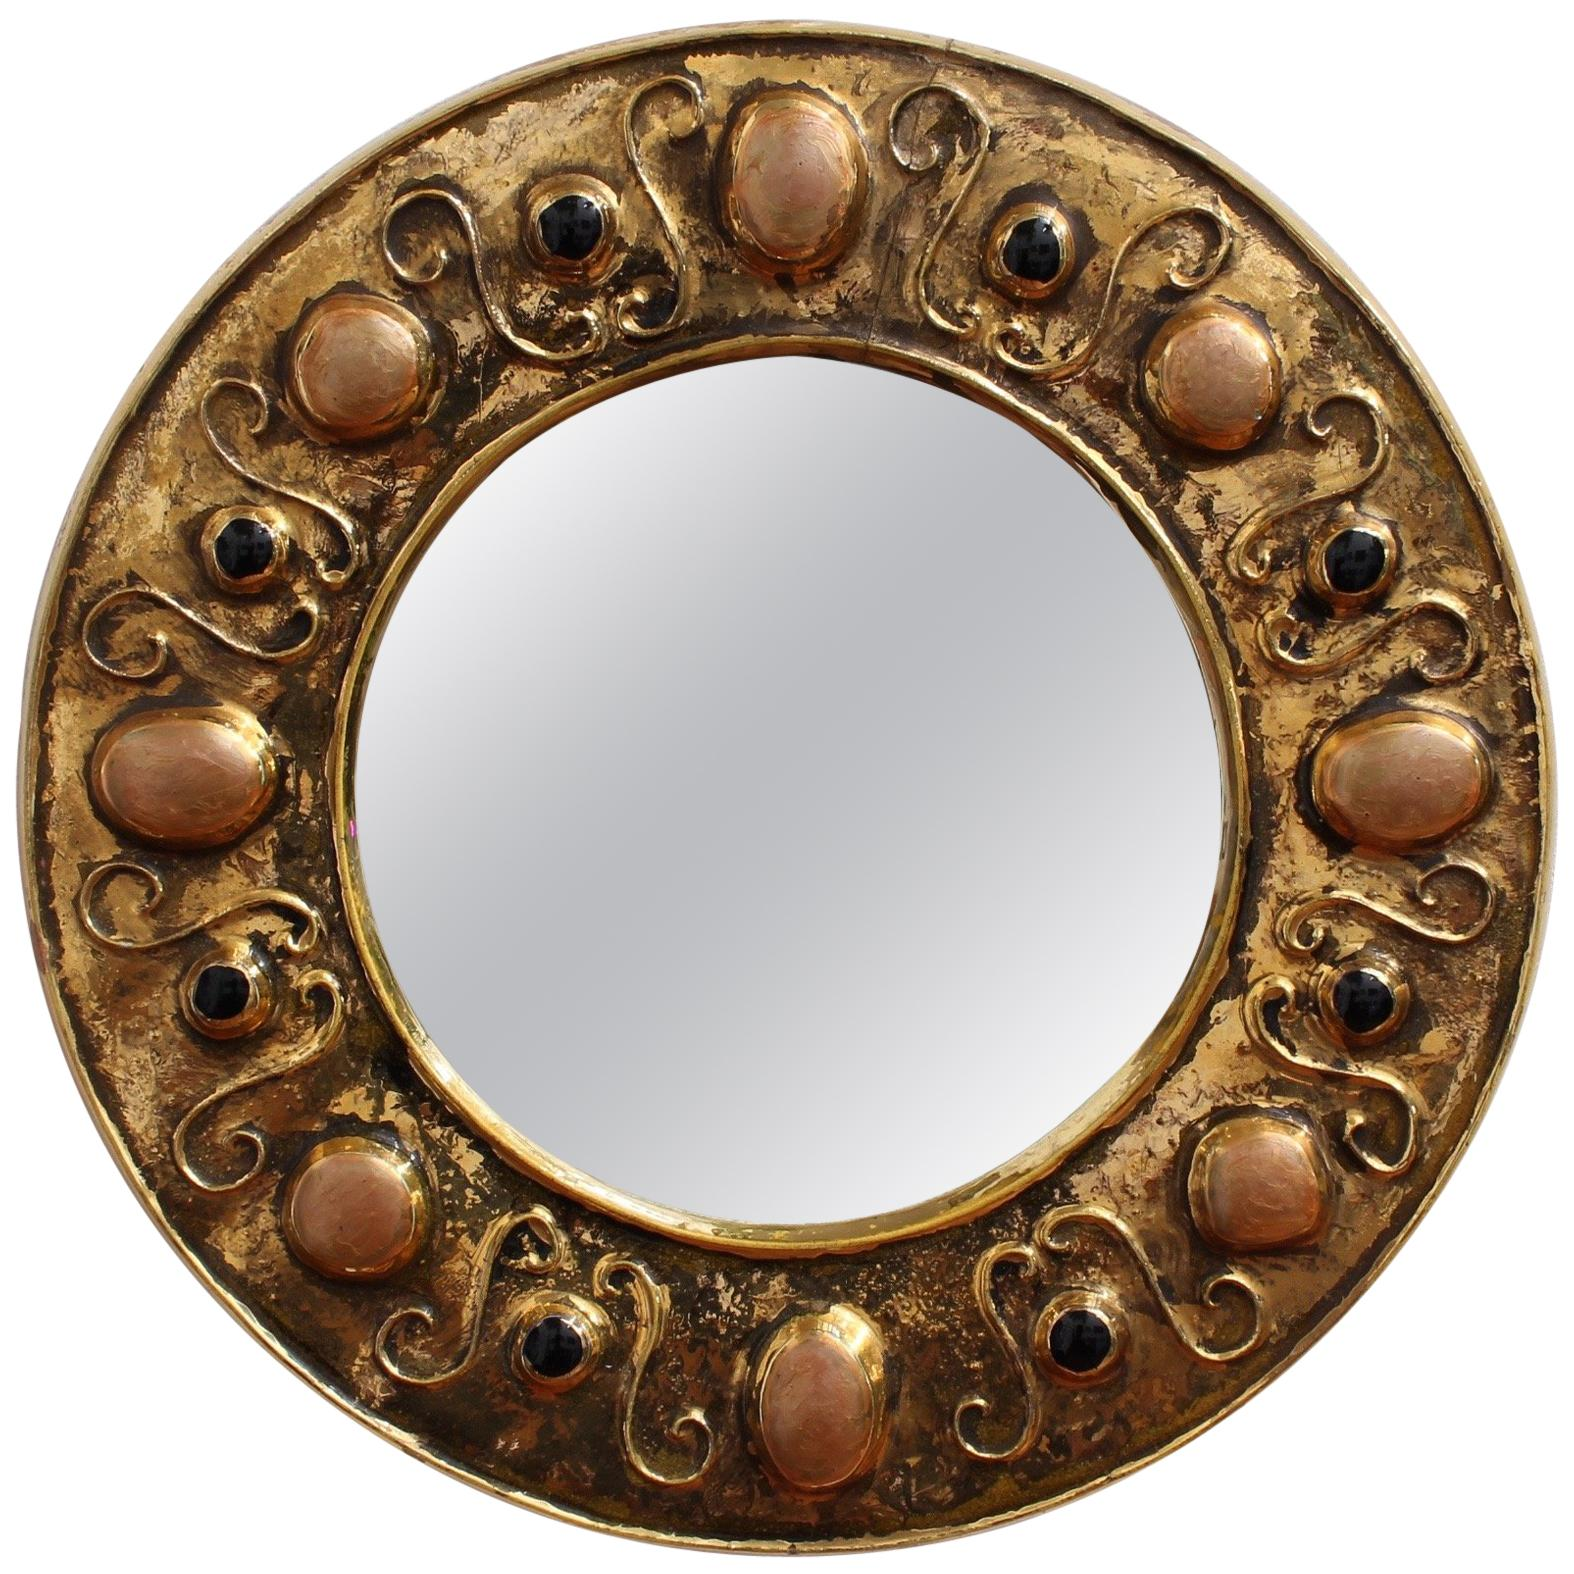 Gilded Ceramic Decorative Wall Mirror by François Lembo, circa 1960s-1970s